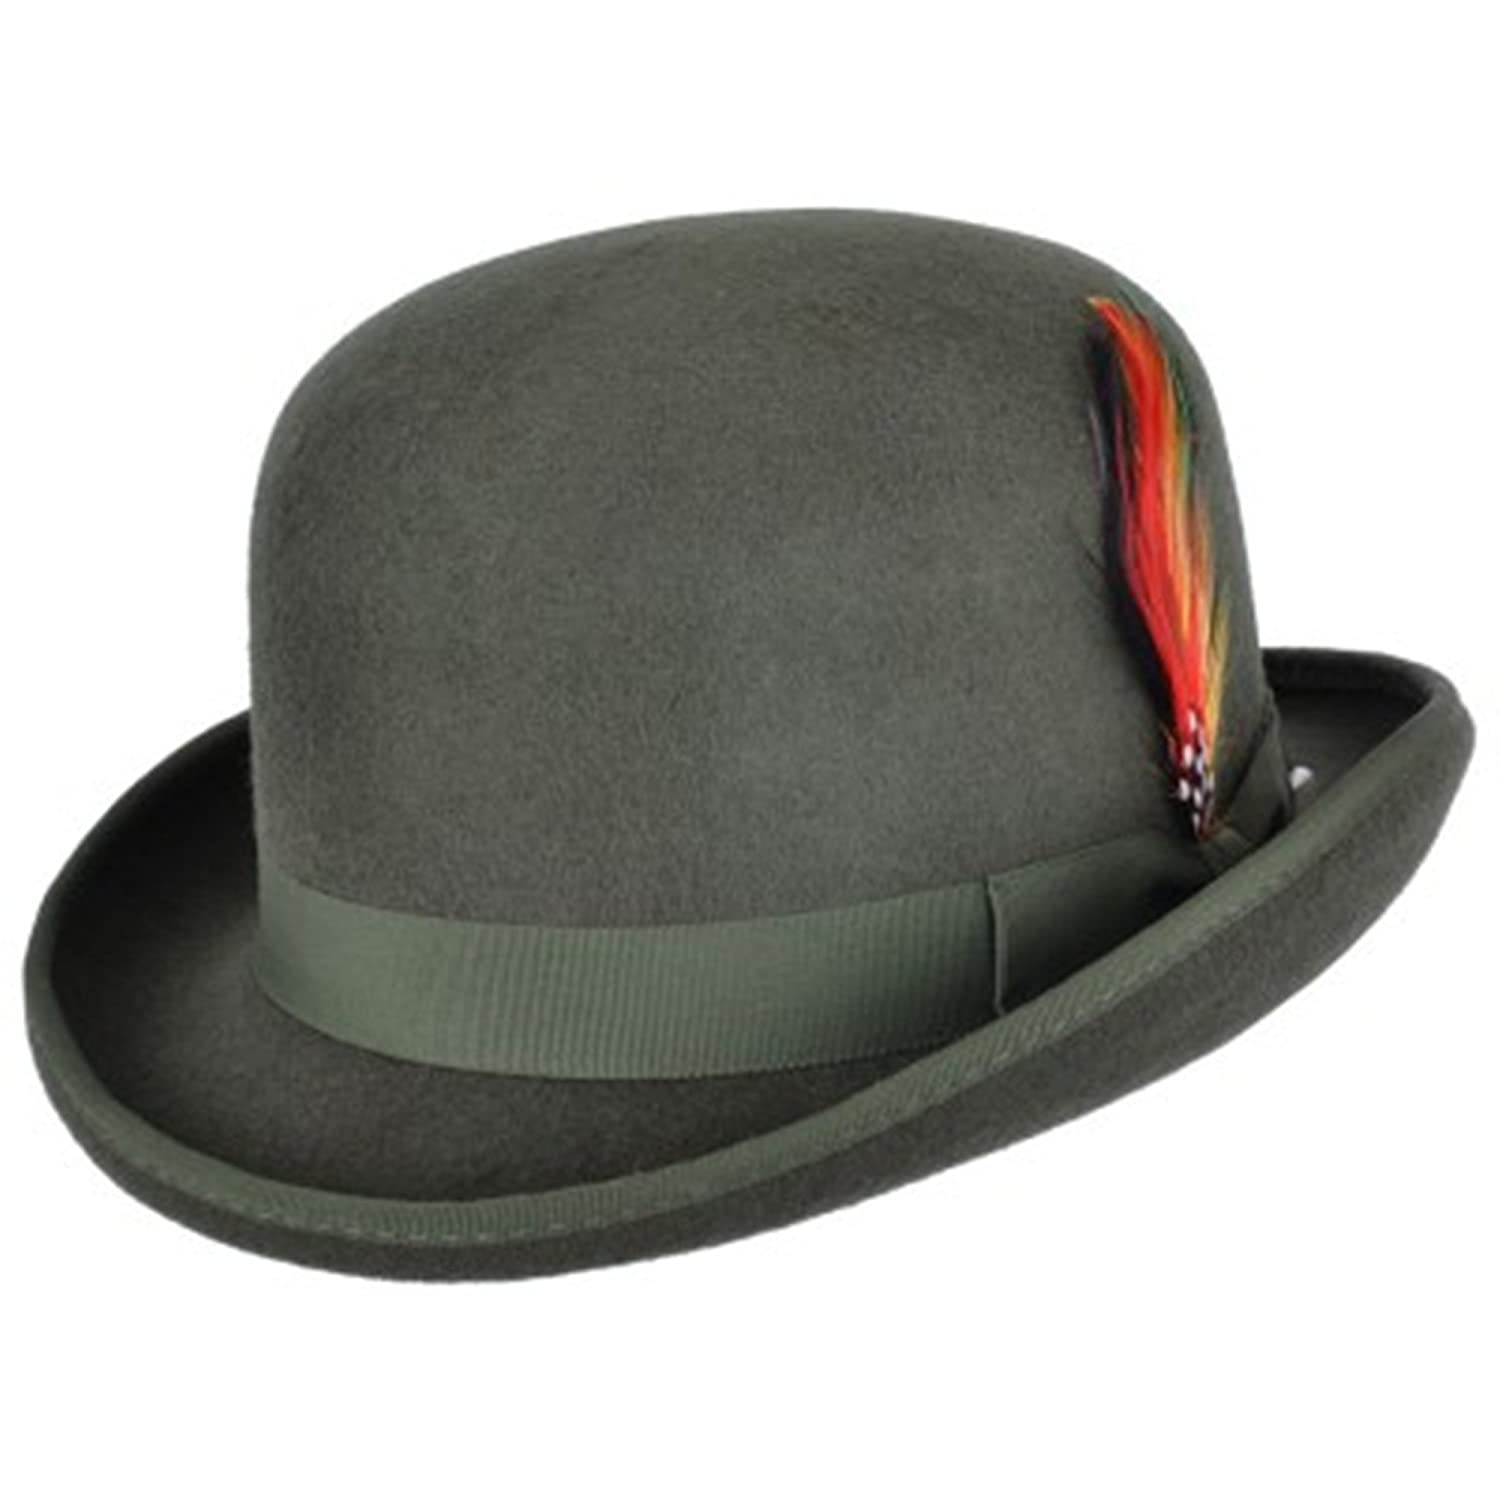 High Quality Hard Top 100% Wool Bowler Hat WITH Feather - Satin Lined - Sizes S to XL